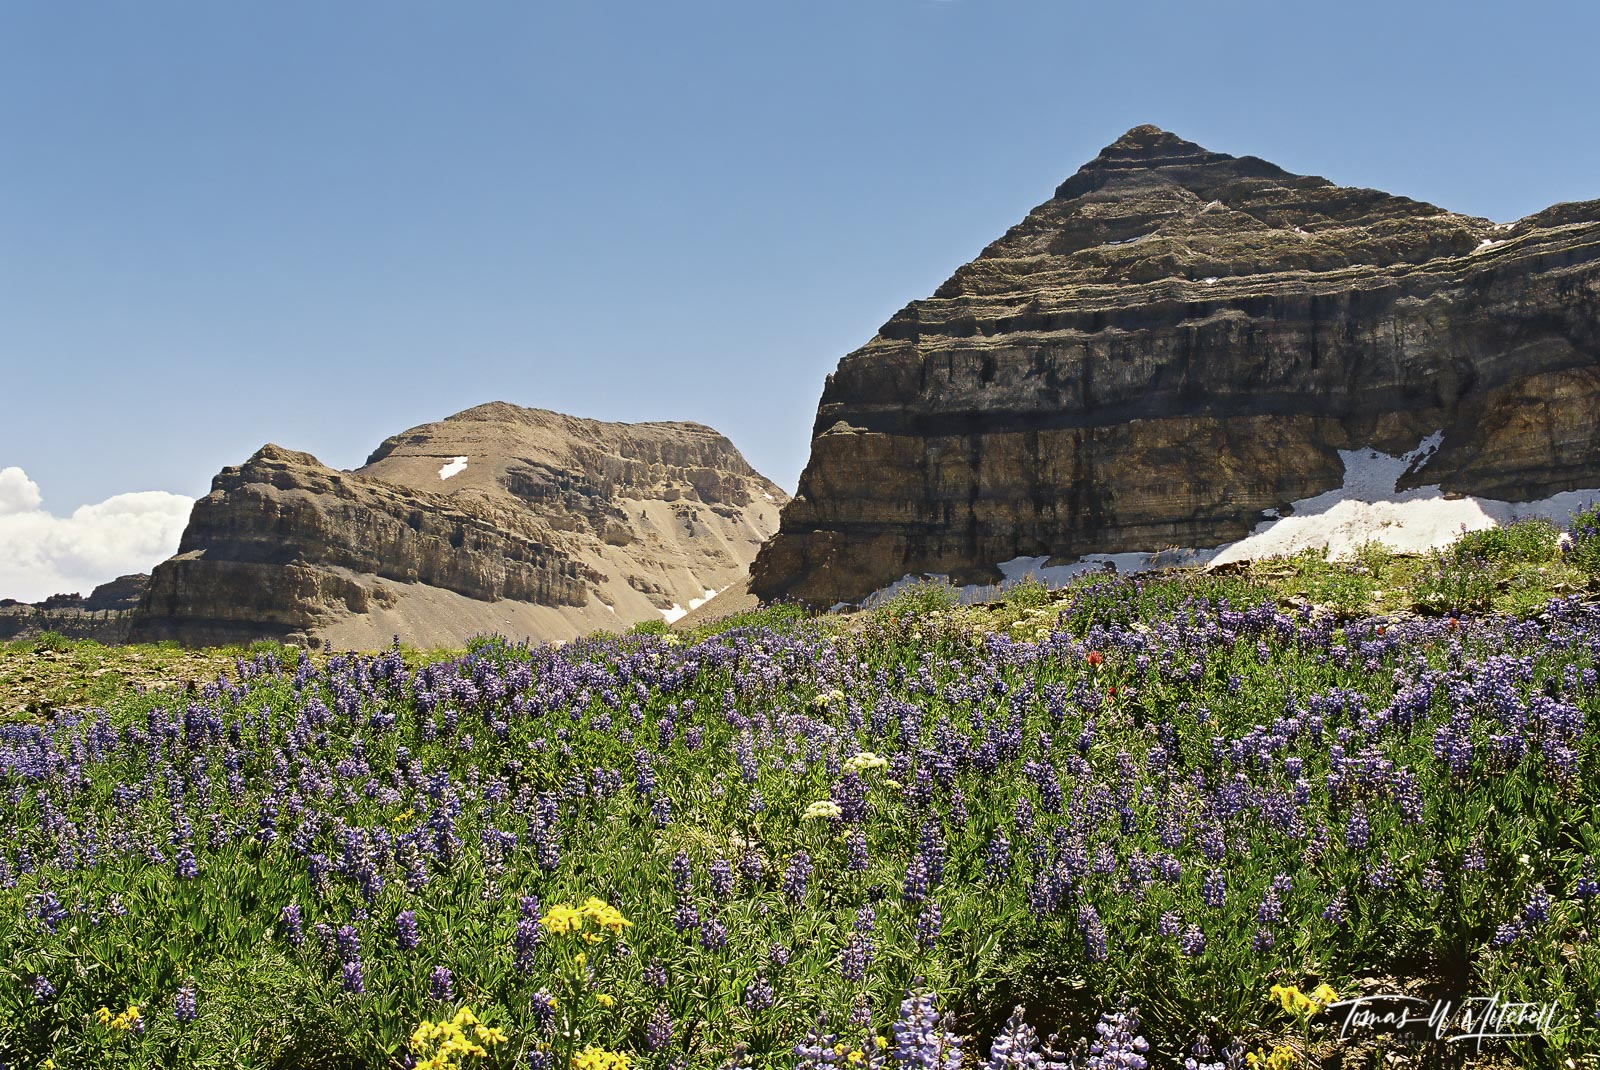 open edition, canvas prints, mount timpanogos, hiking,  wildflowers, lupine, paintbrush, columbine, utah, photo